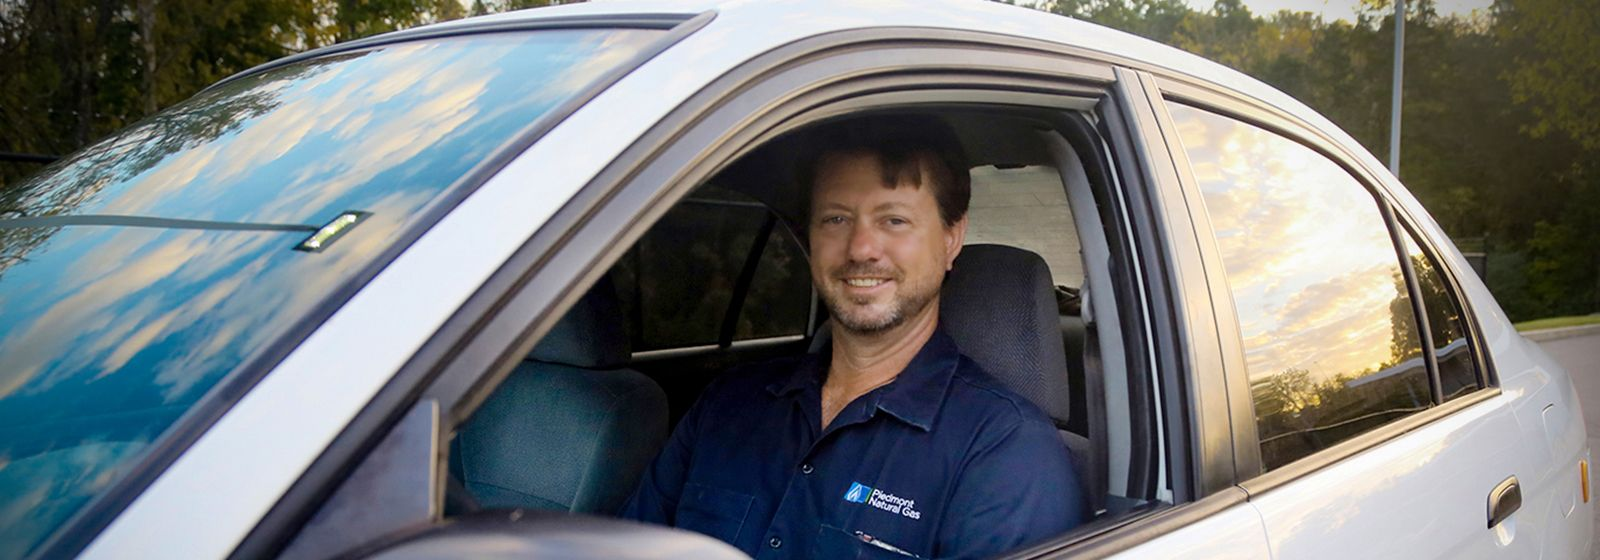 Drivers save money with natural gas vehicles